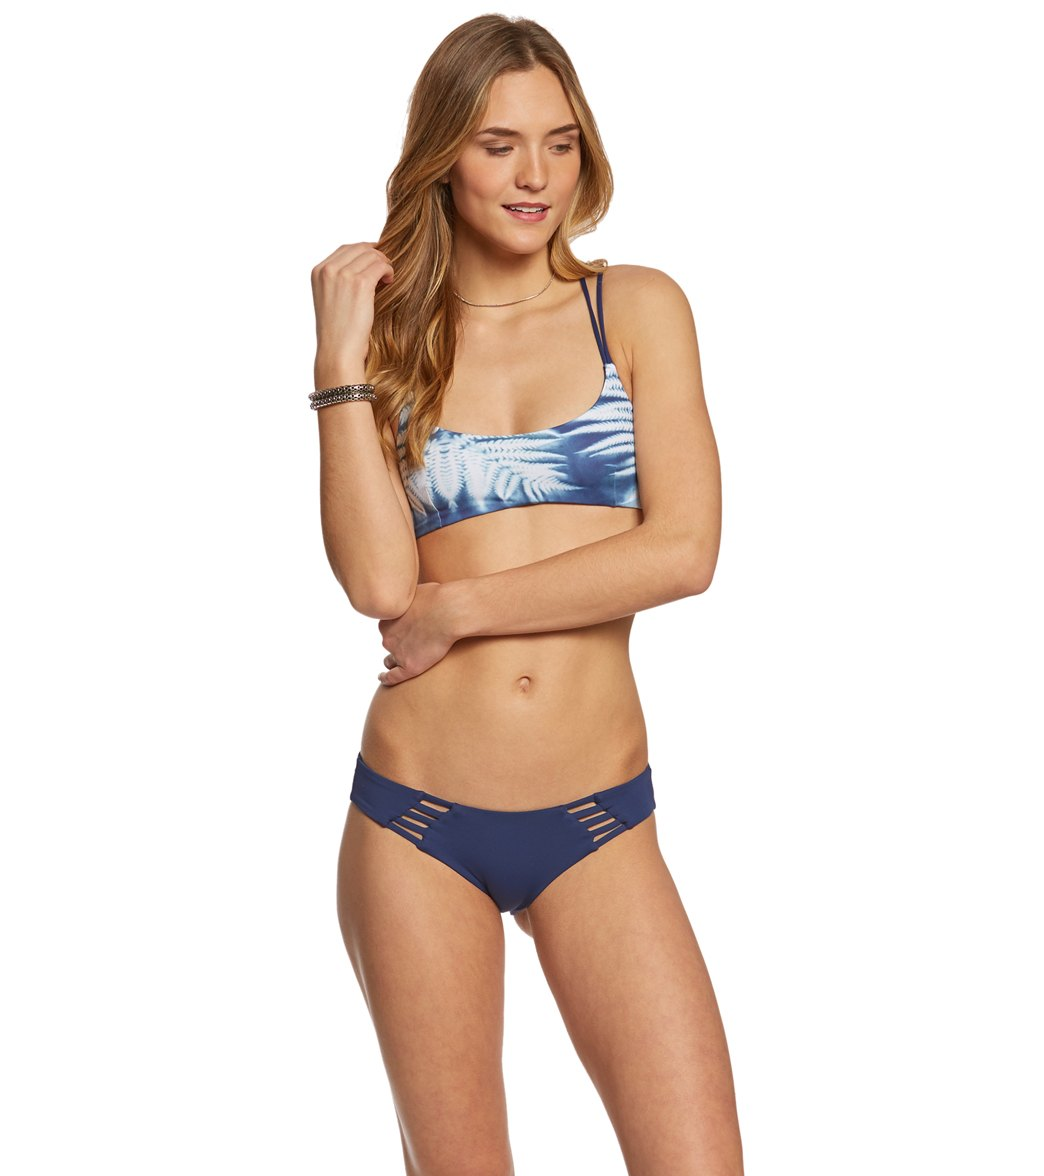 77a0ed87fff Rip Curl Swimwear Westwind Reversible Bralette Bikini Top at ...